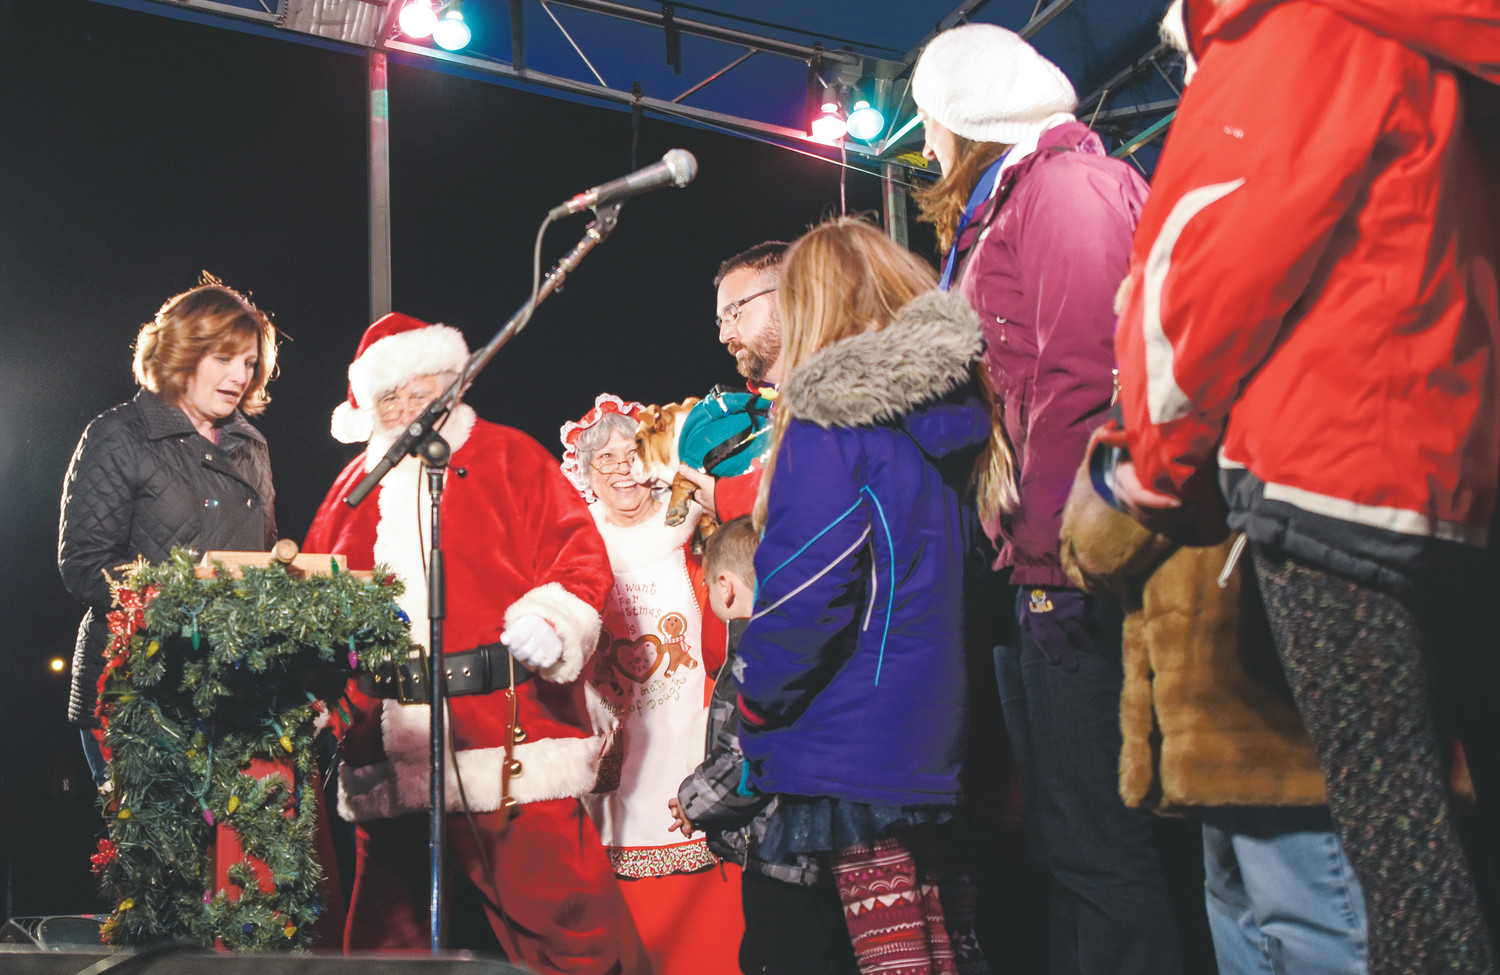 Thornton Mayor Heidi Williams, left, and Santa Claus get ready to  turn on the Christmas lights, officially opening this year's Thornton Winter Fest, Friday, Dec. 8 at Carpenter Park.